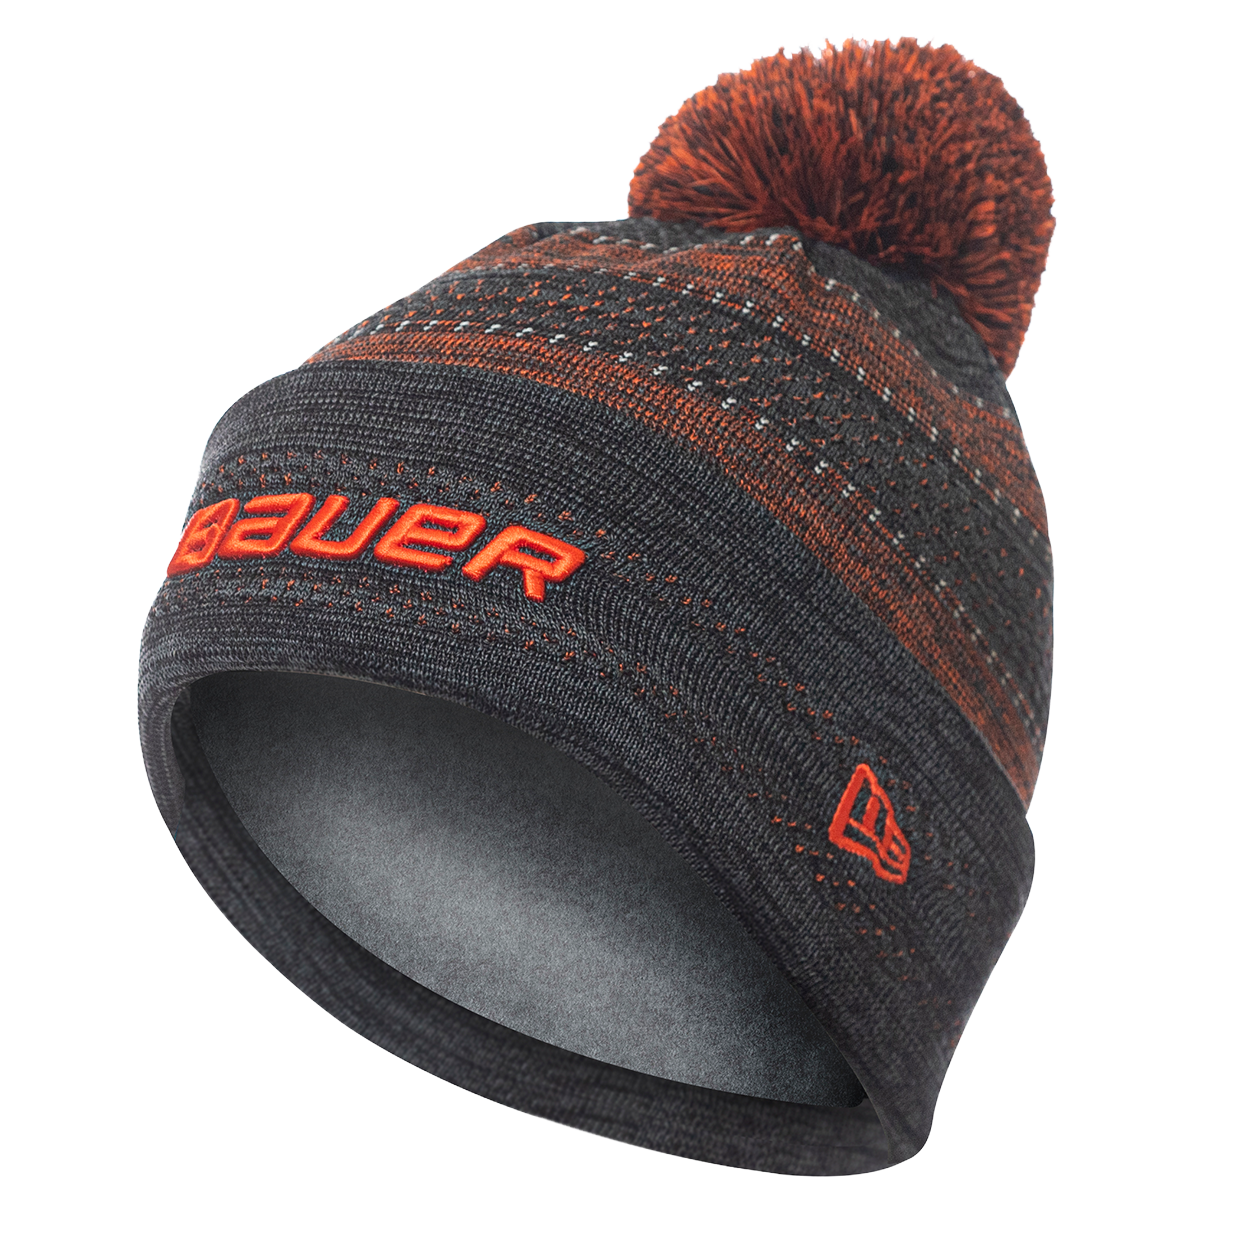 New Era Color Pop Pom Knit Stripe Beanie Senior - Orange,,moyen